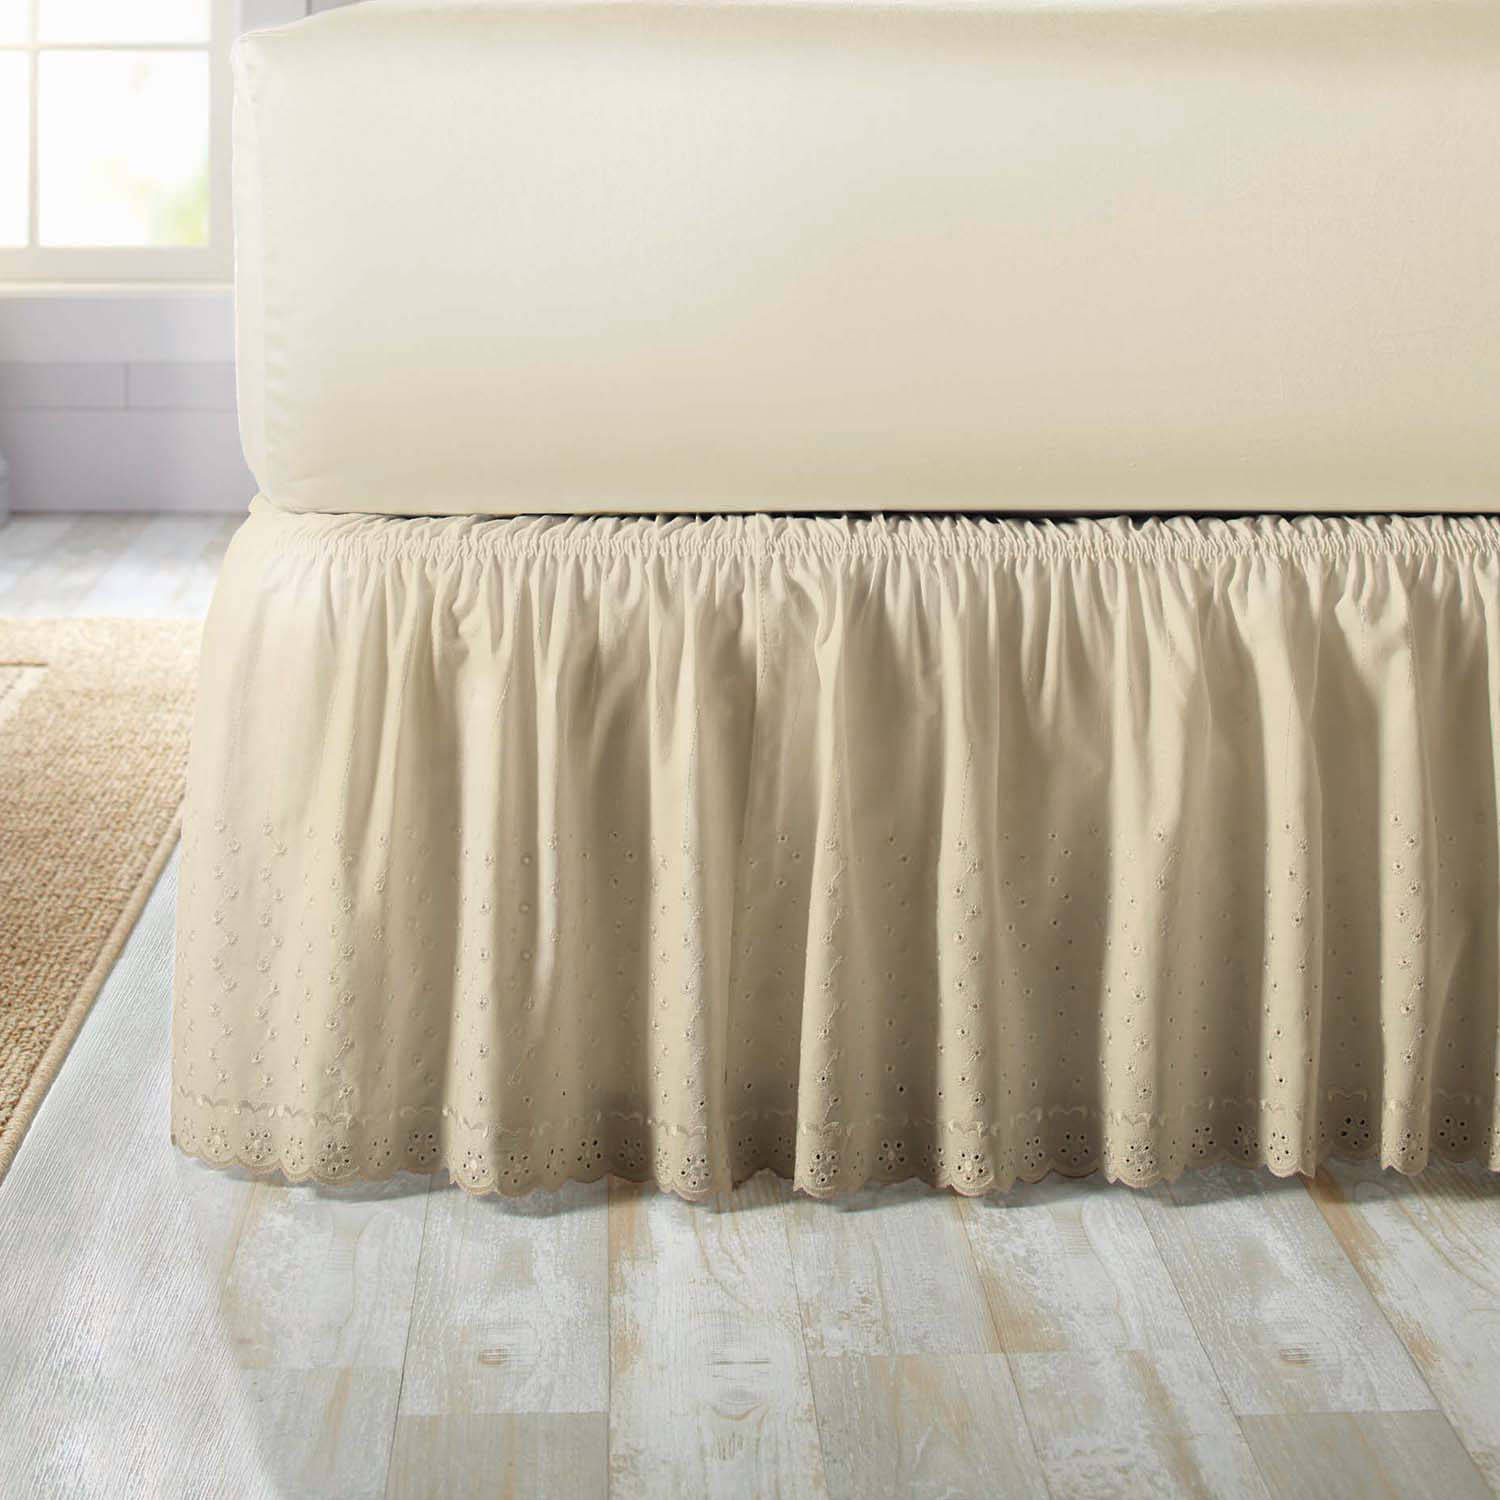 Better Homes & Gardens Eyelet Adjustable Bed Skirt, 1 Each